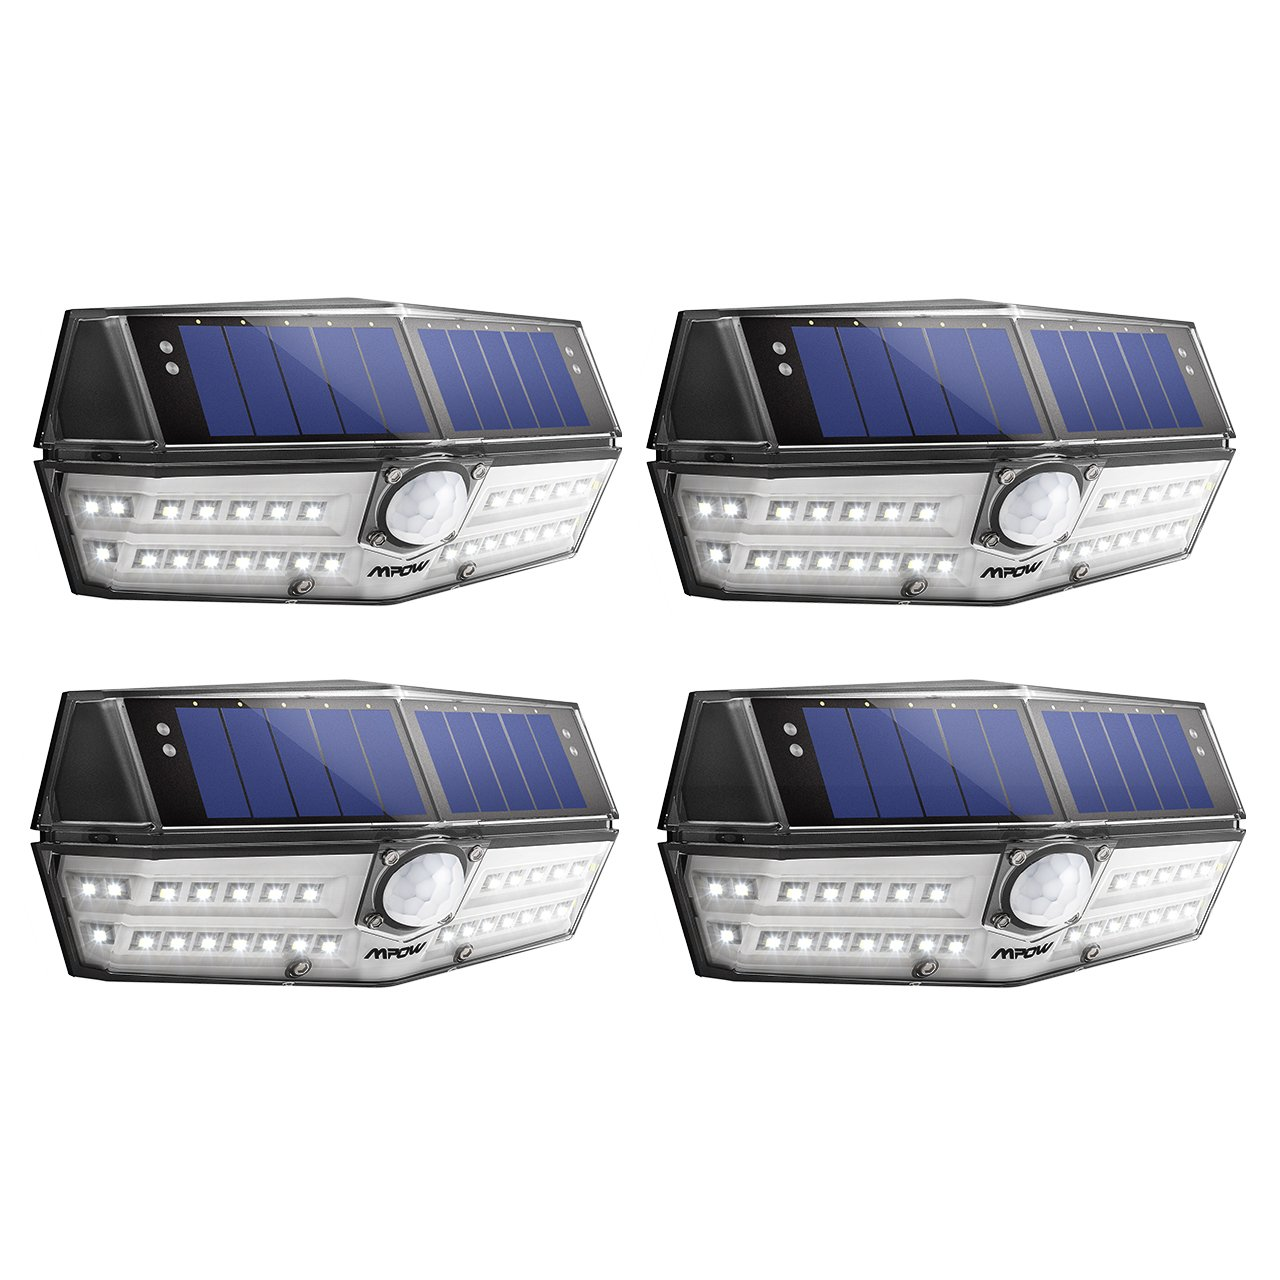 Mpow 30 LED Solar Lights, A New Generation of Motion Sensor Solar Lights, Powerful IPX6+ Waterproof, Industry-leading SunPower Solar Panel, Bright Wall Light, Upgraded 120° Wide-angle Sensor Head, 30 Enhanced LEDs for High Brightness, Great Outdoor Light